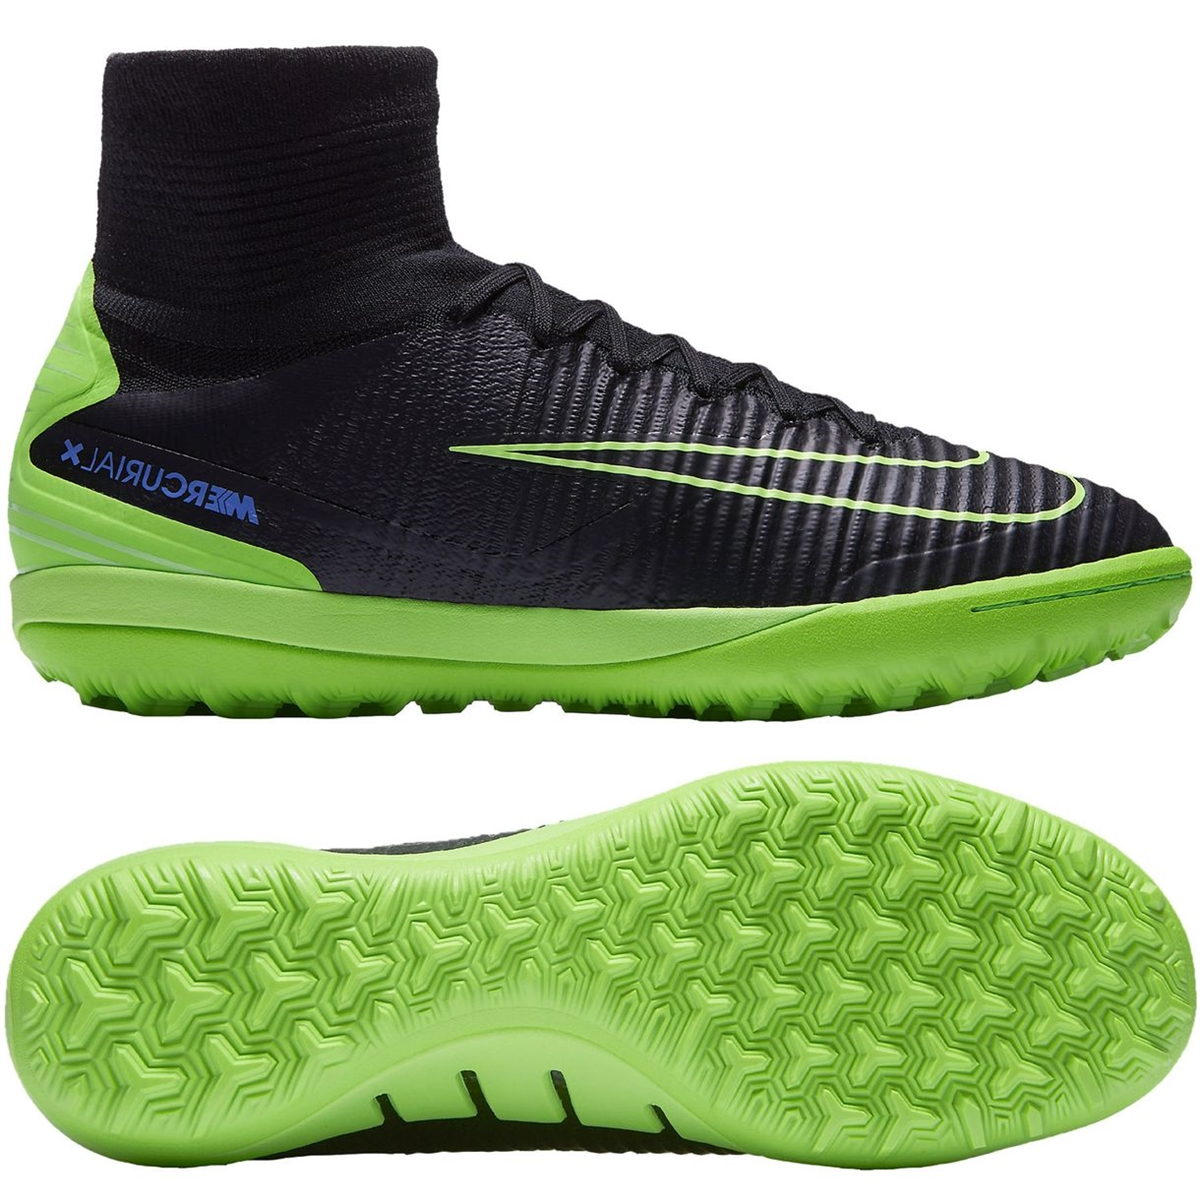 Nike MercurialX Proximo II TF Turf Soccer Shoes (Black/Electric Green/Paramount  Blue